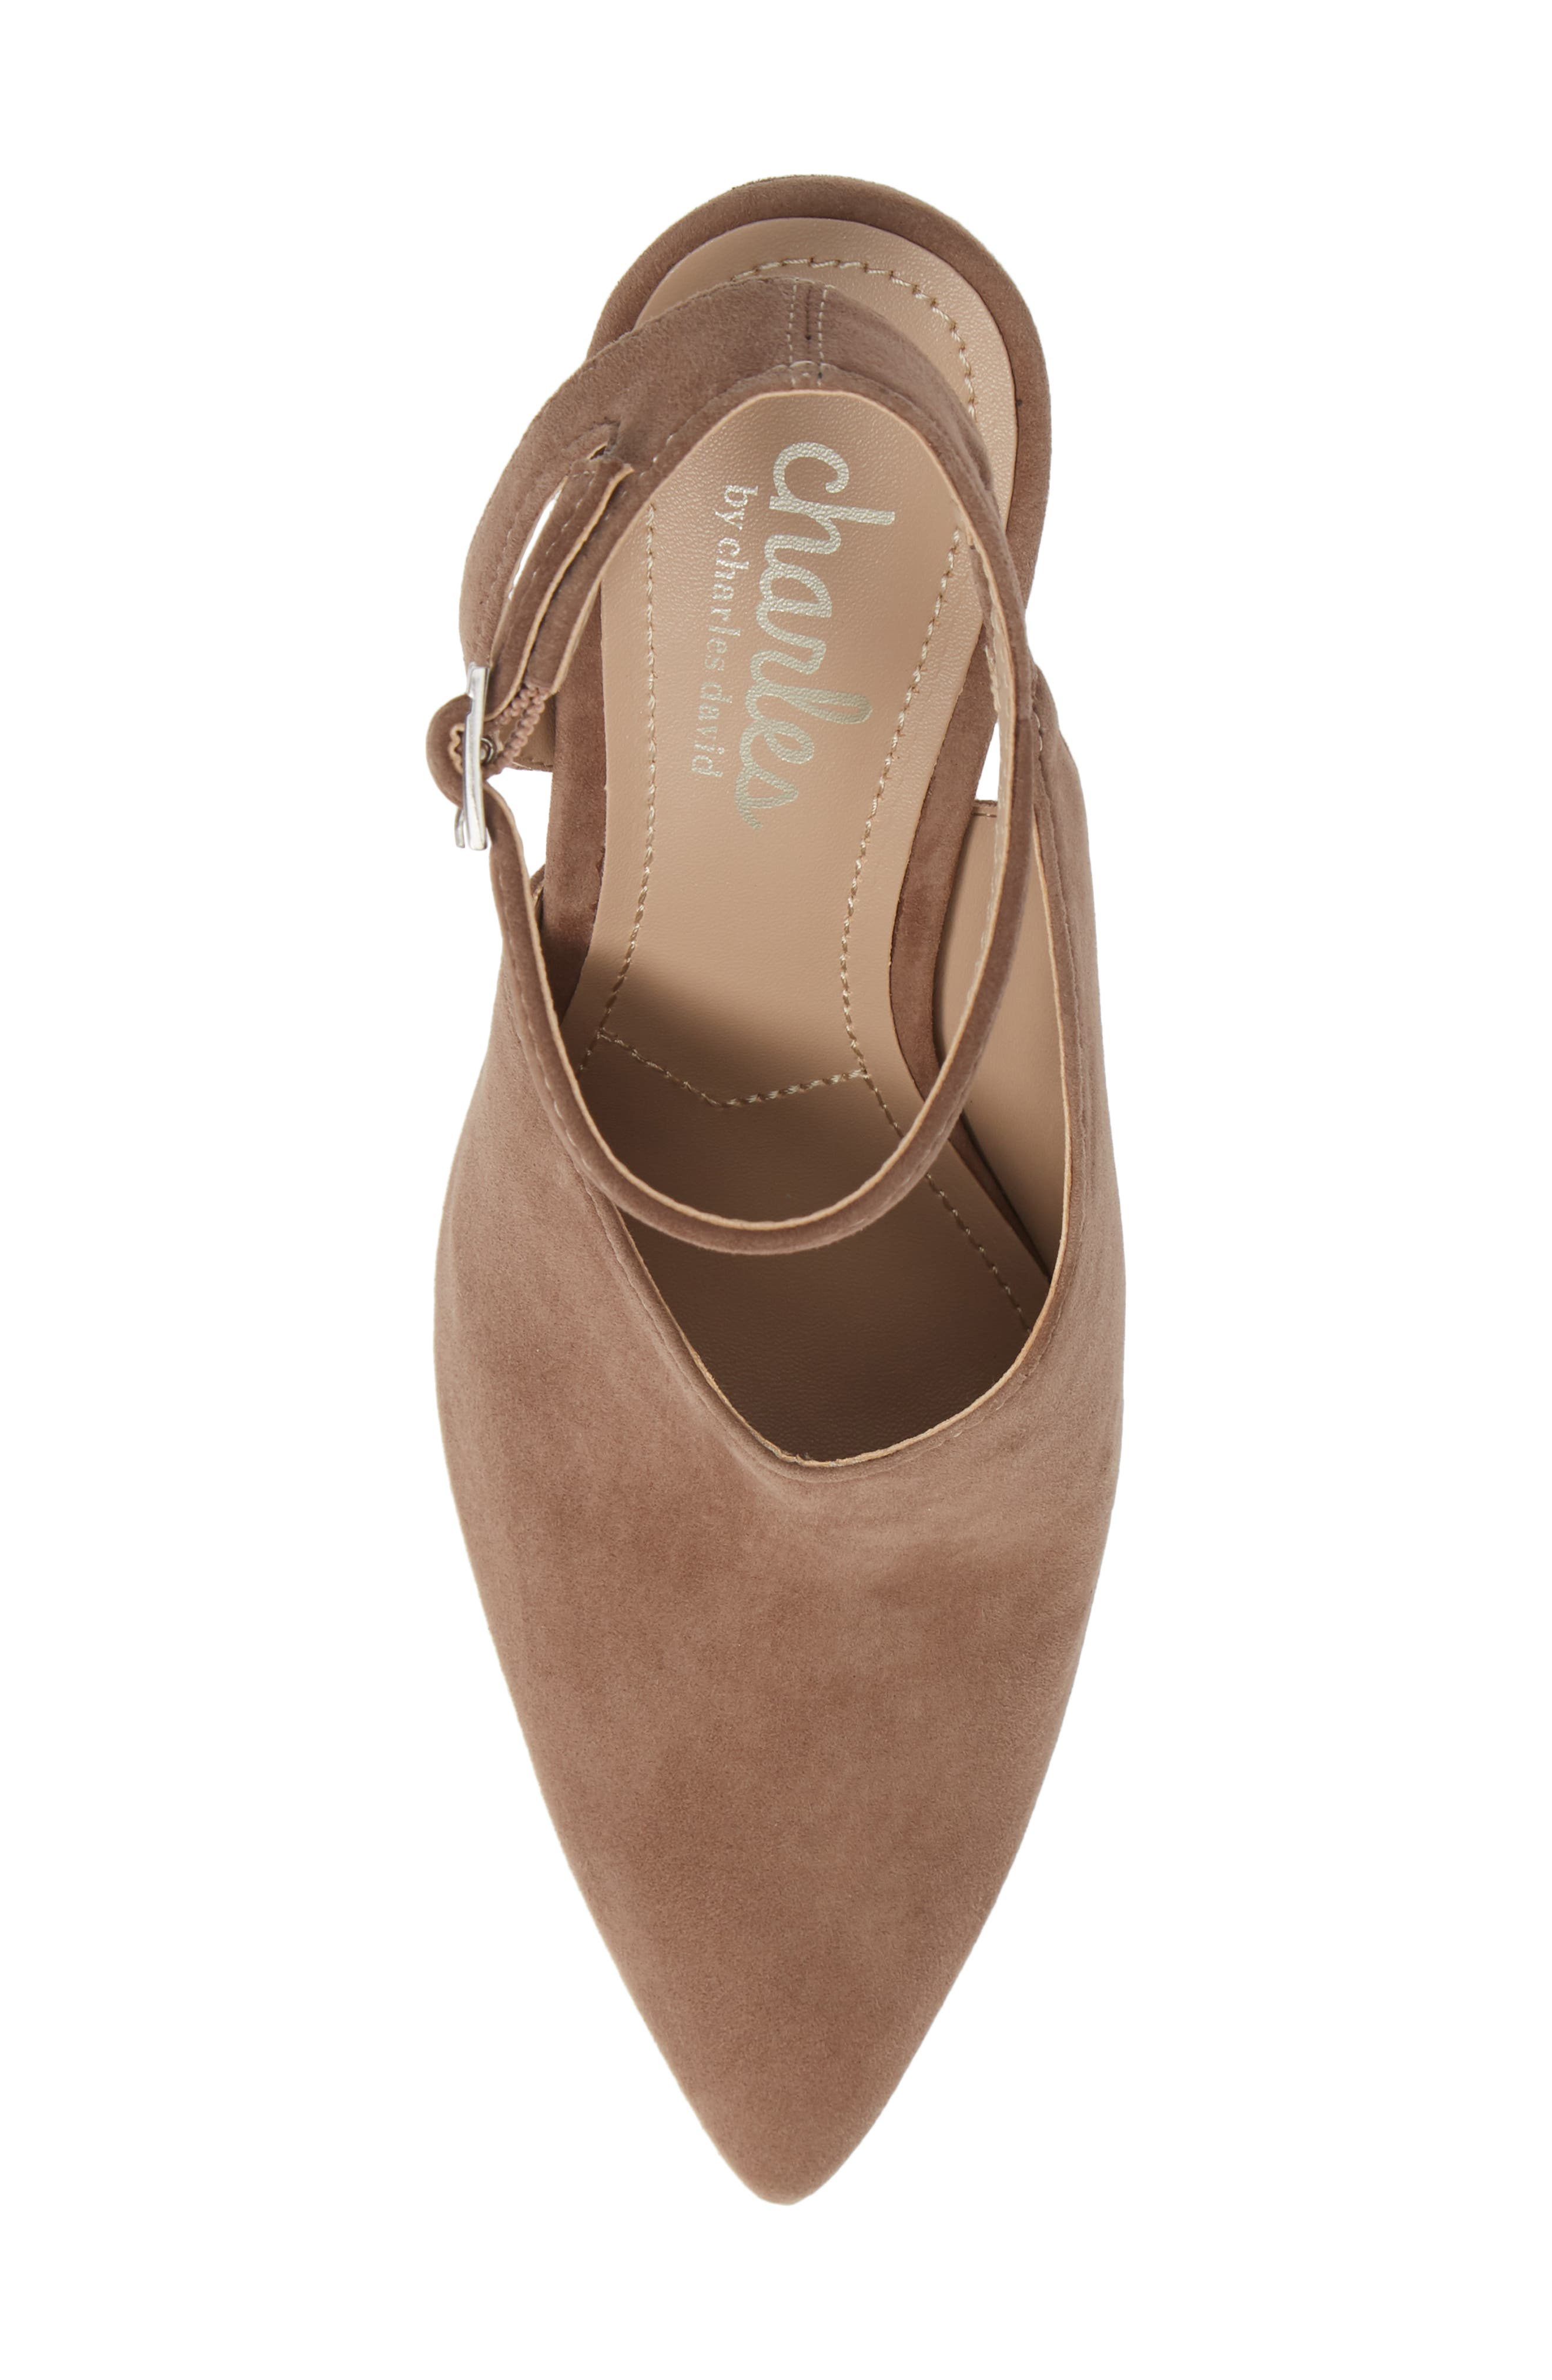 CHARLES BY CHARLES DAVID, Mieko Pump, Alternate thumbnail 5, color, TAUPE SUEDE